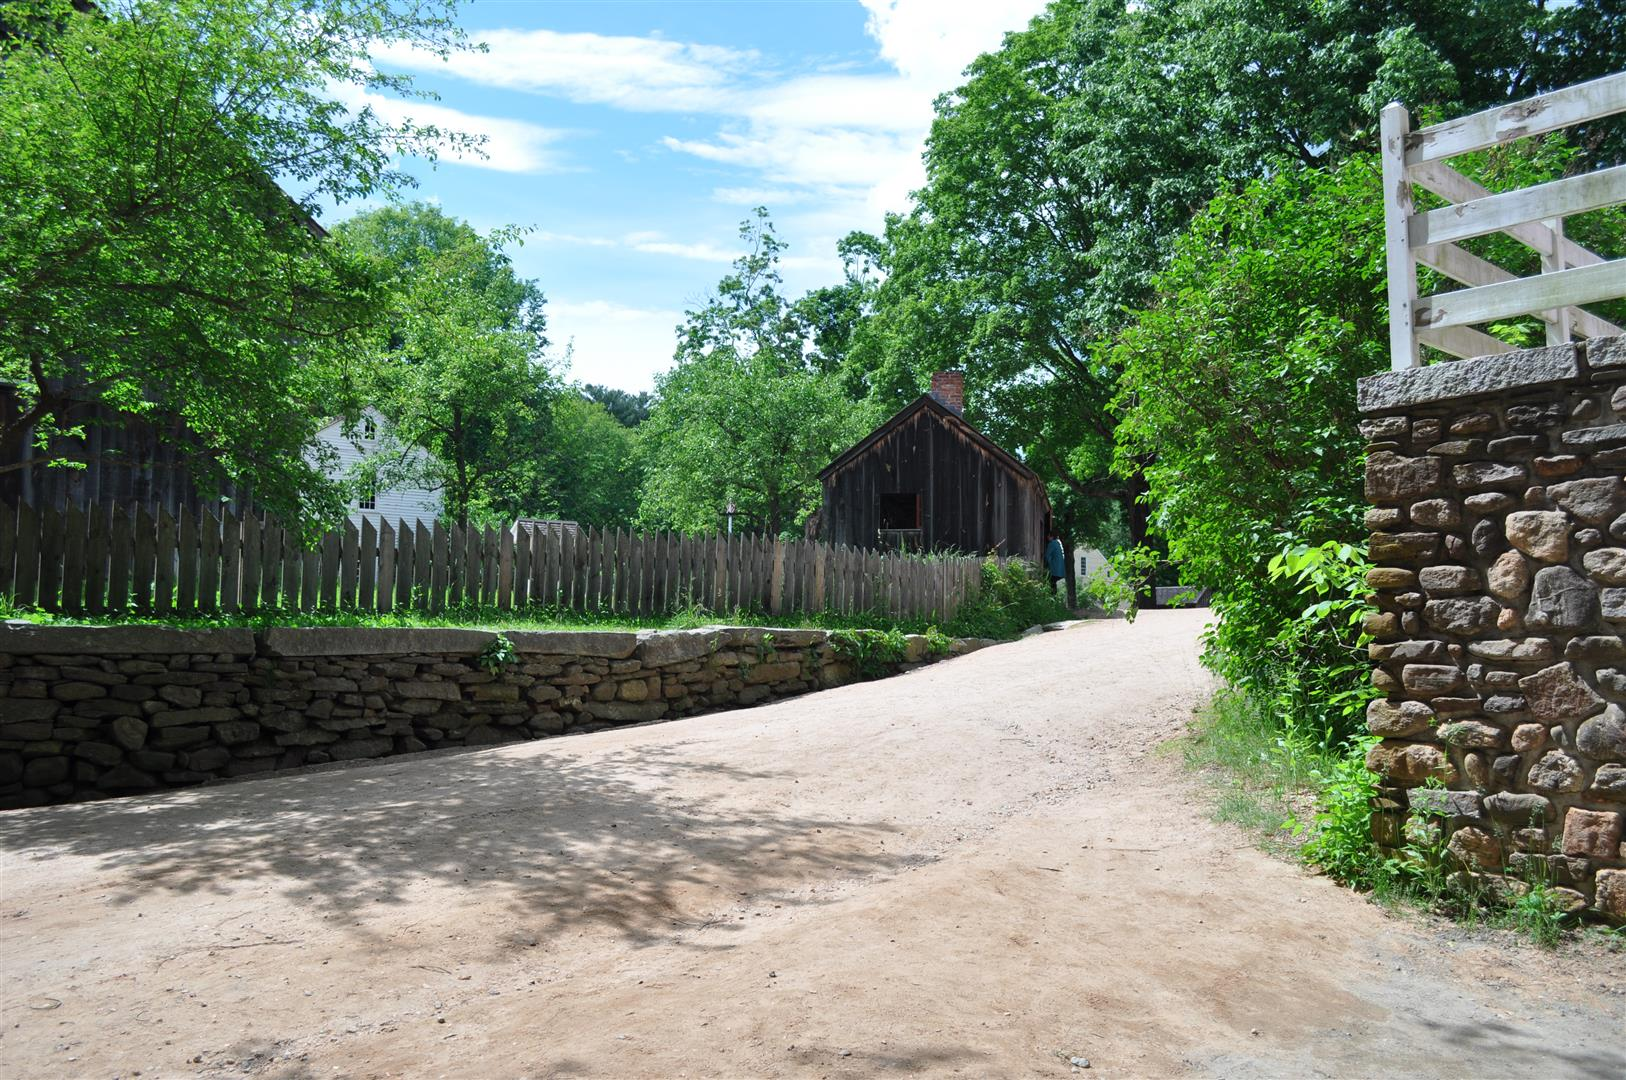 Road, Old Sturbridge Village